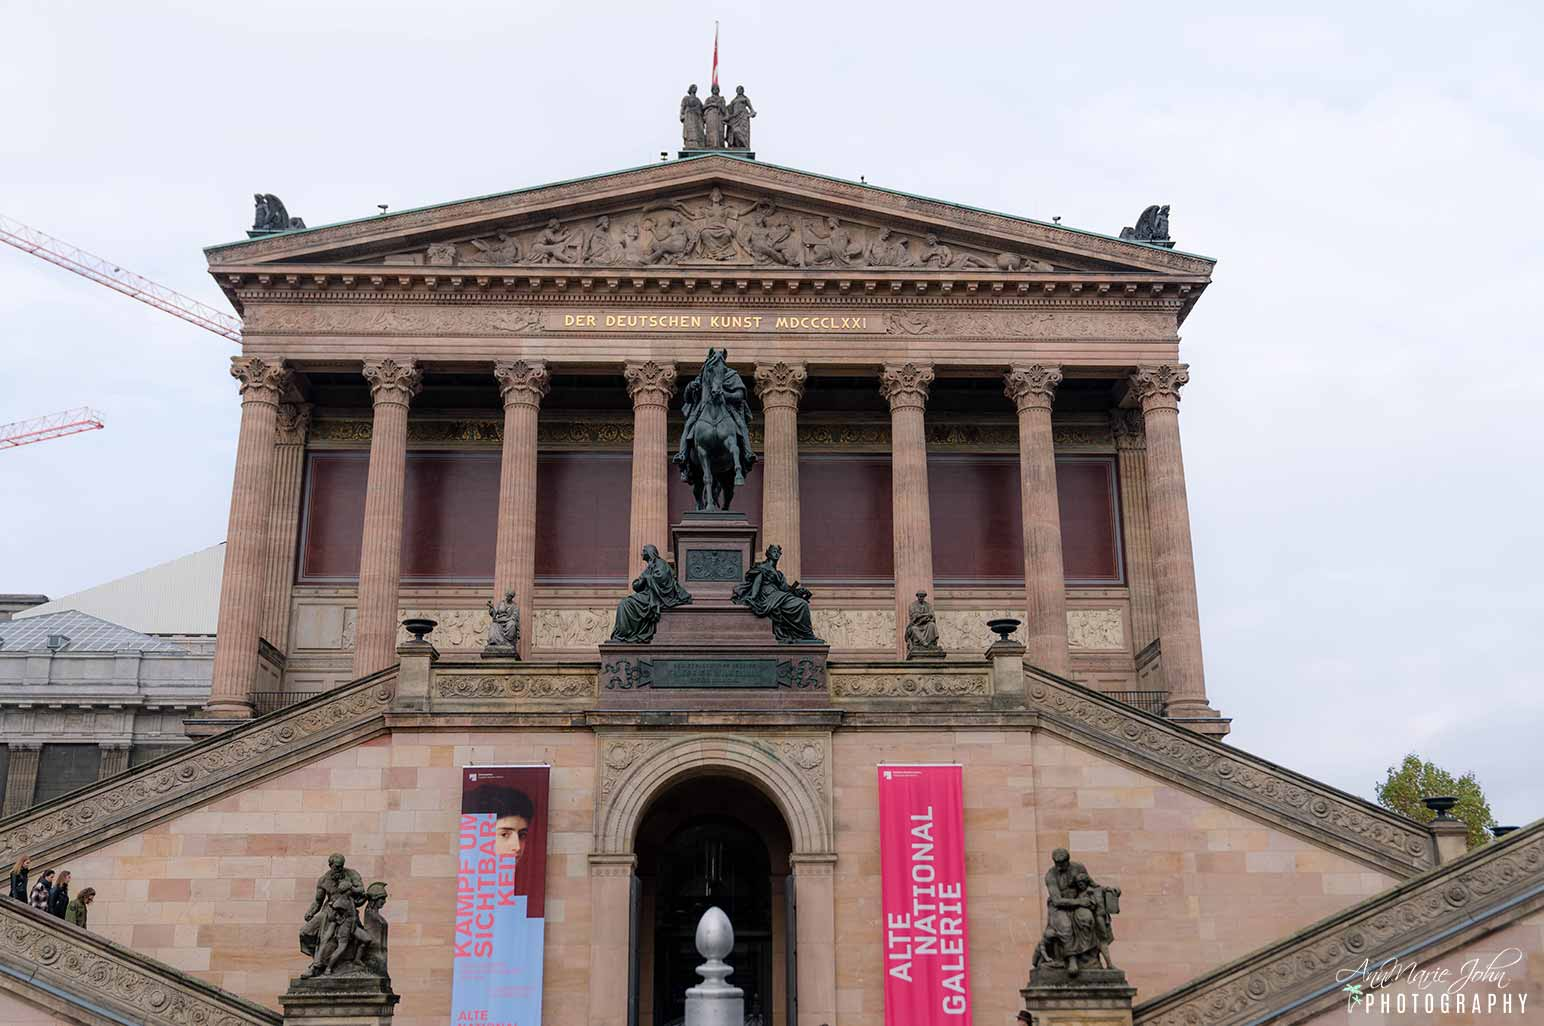 Museum in Berlin, Germany